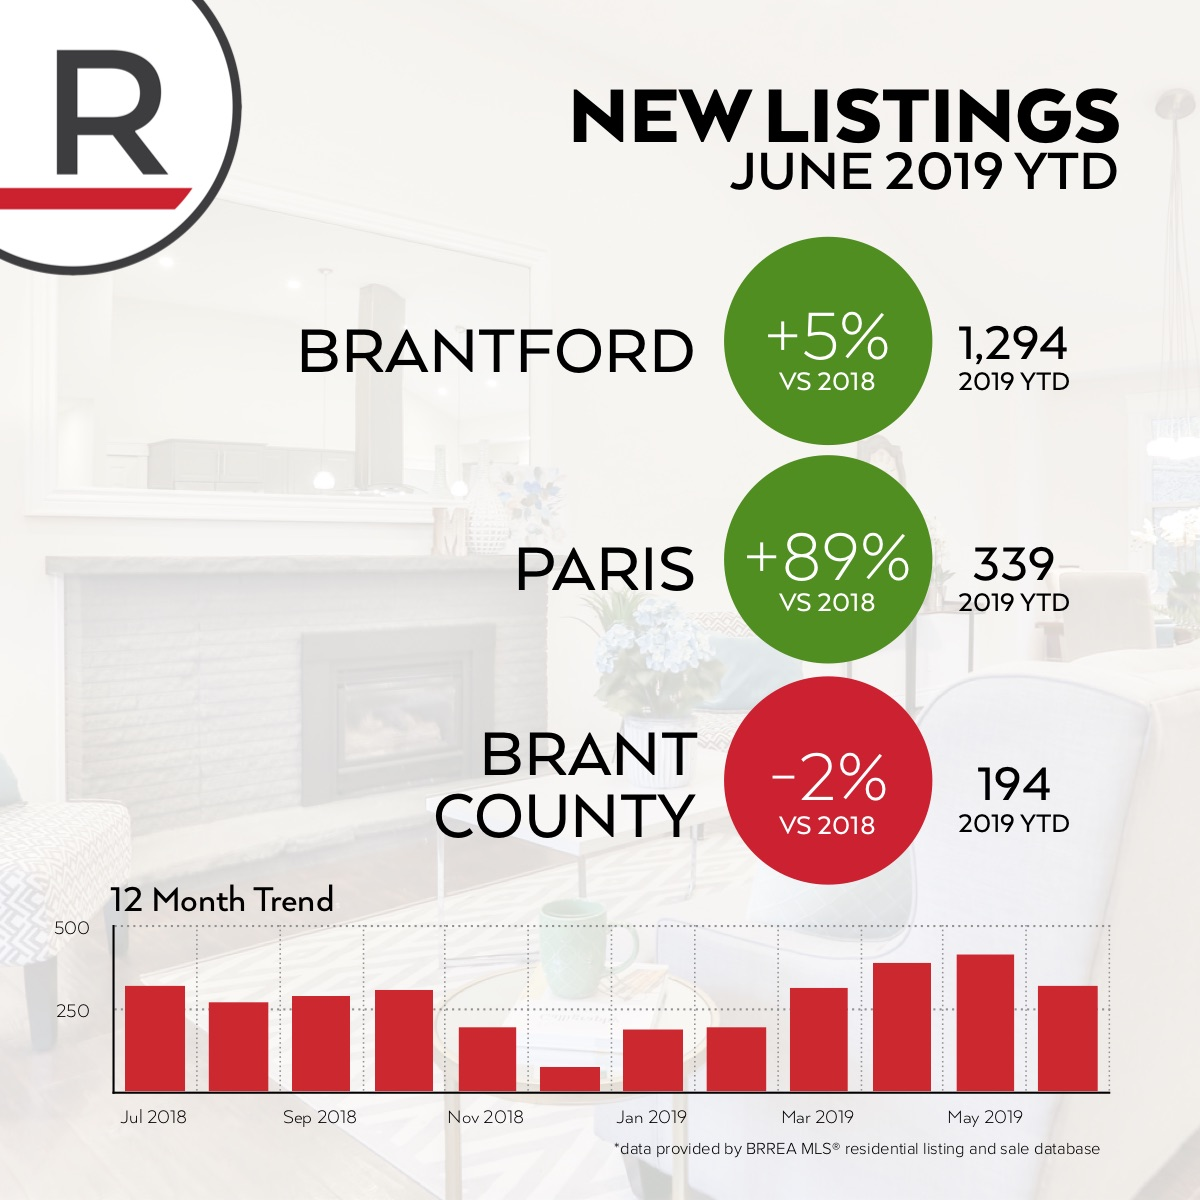 The number of new listings peaked in May and began to retreat. Overall there have been 5% more homes come up for sale this year in Brantford and 89% more in Paris - wow!